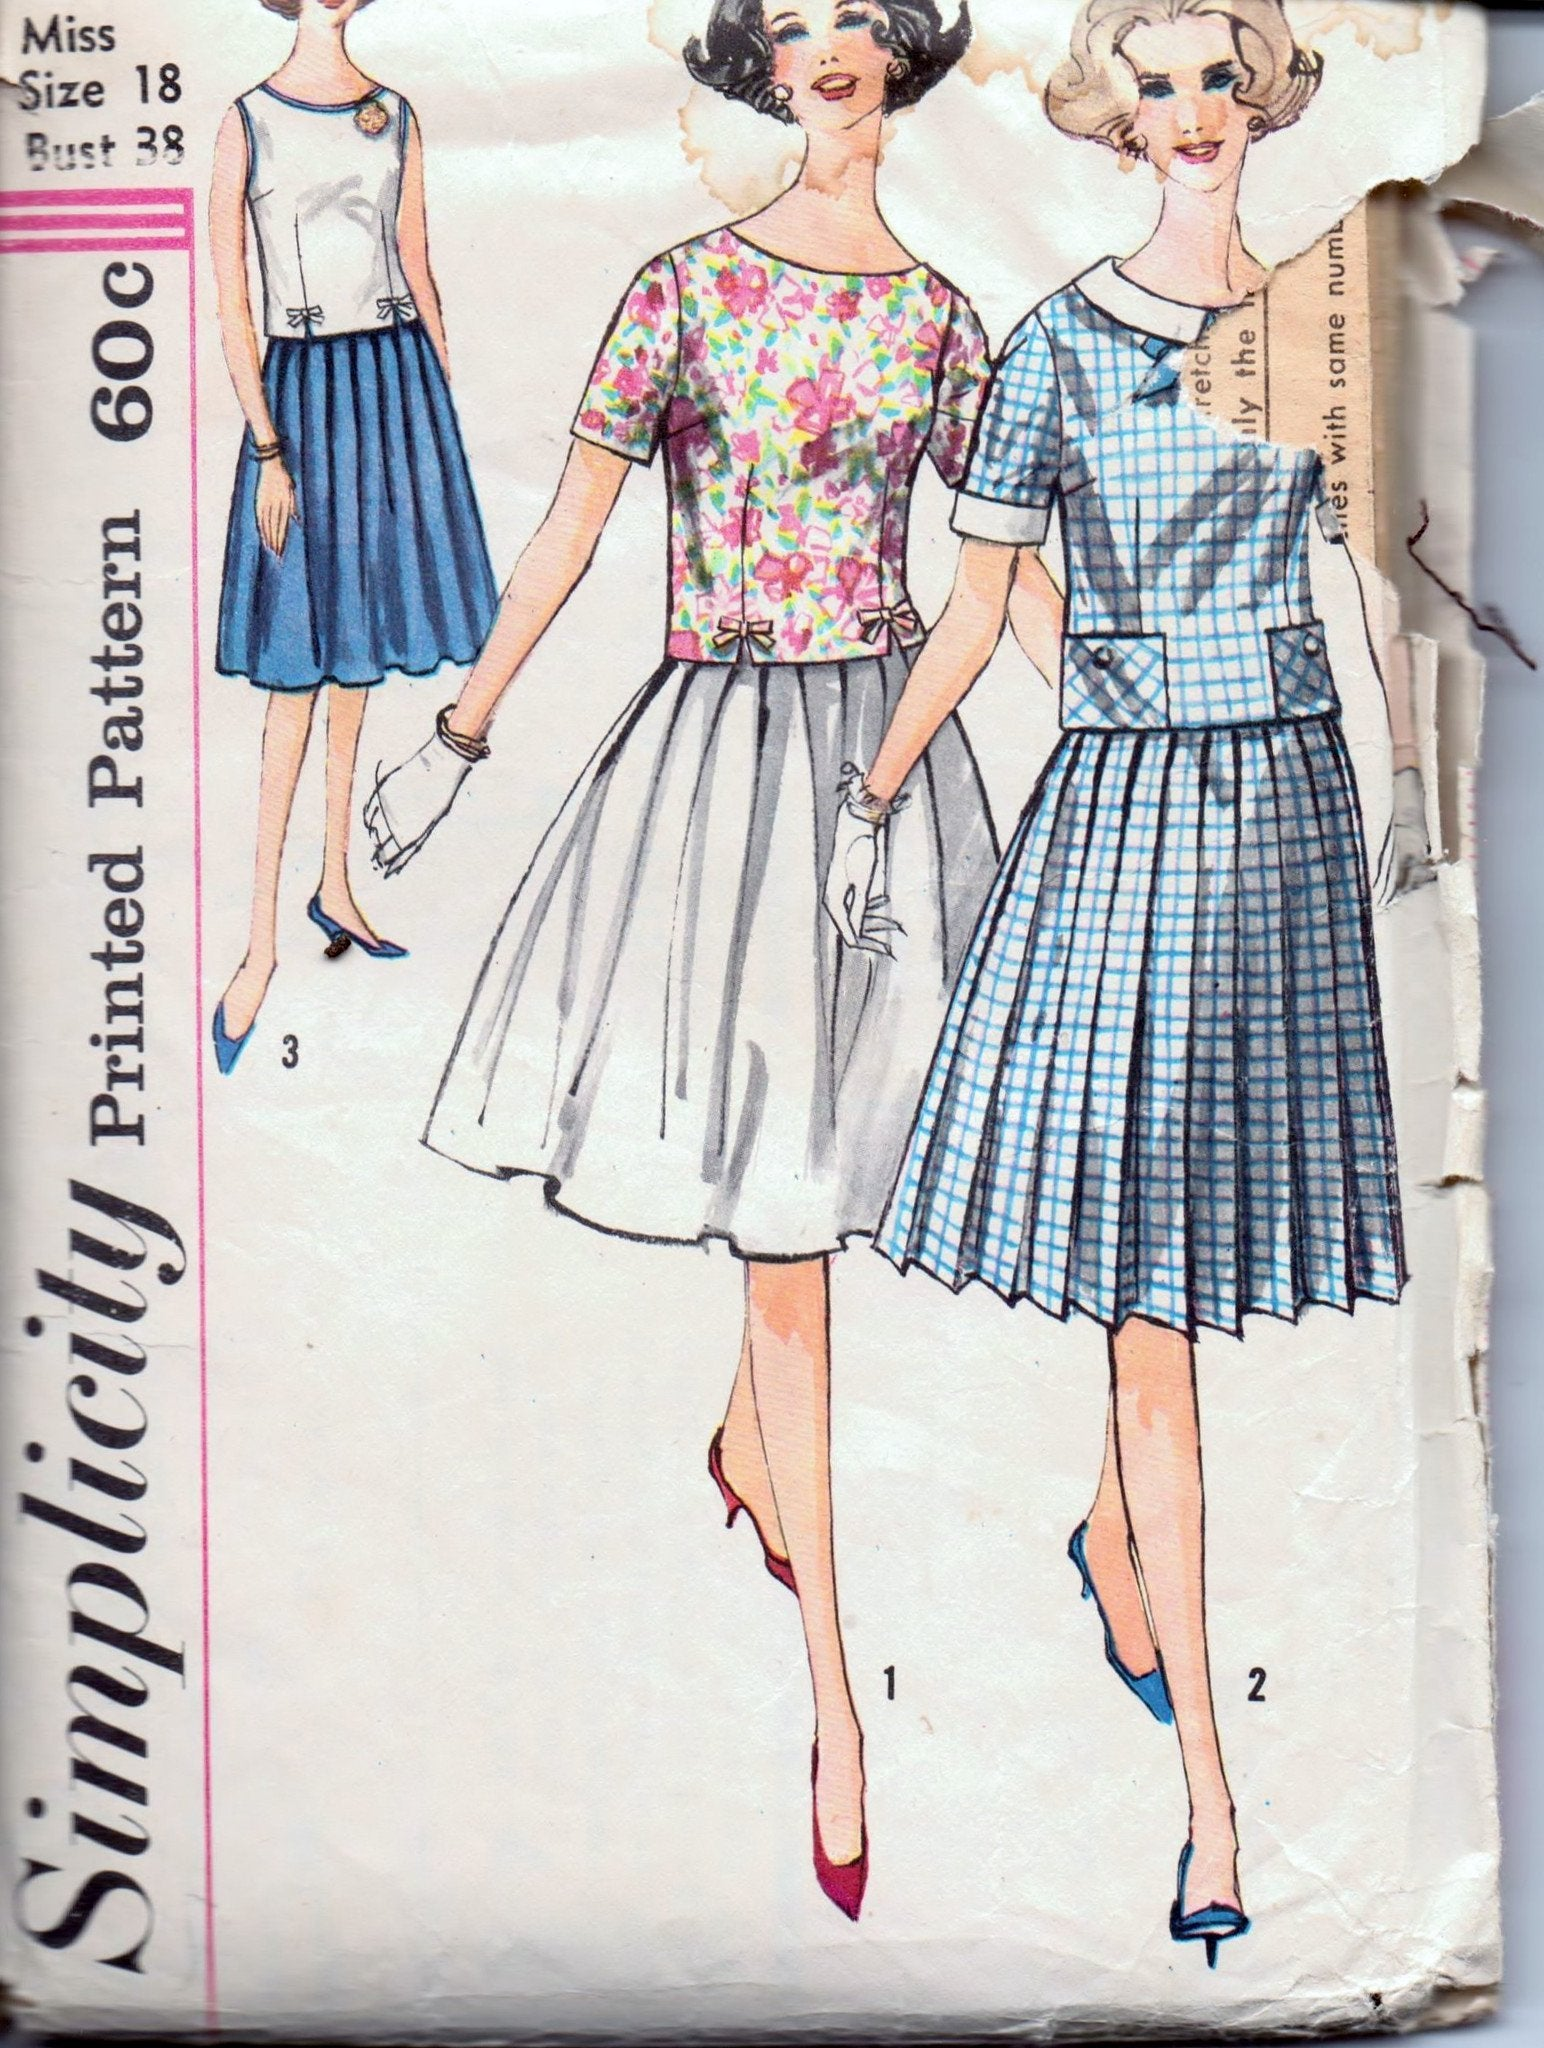 Simplicity 3801 Ladies Skirt Blouse Two Piece Suit Vintage 1960's Sewing Pattern - VintageStitching - Vintage Sewing Patterns